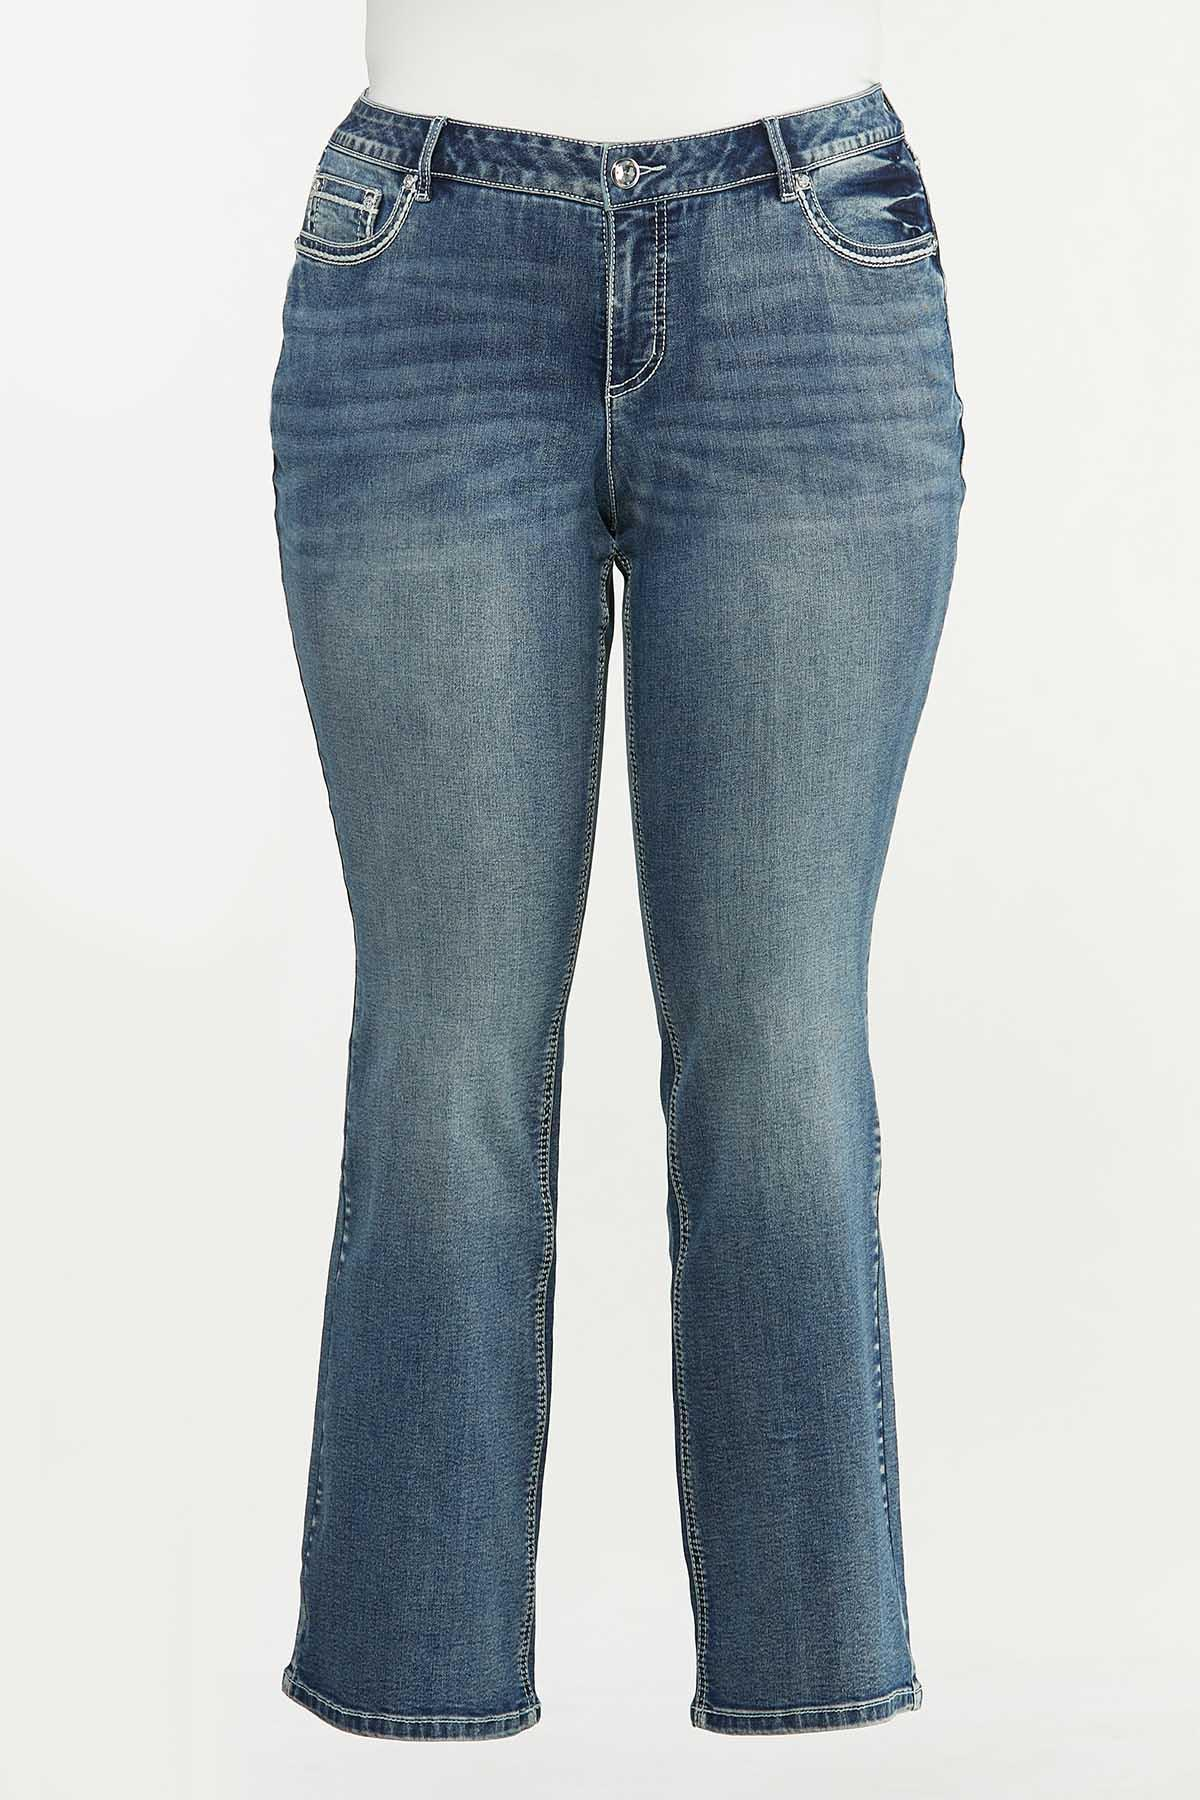 Plus Size Star Studded Bootcut Jeans (Item #44674477)